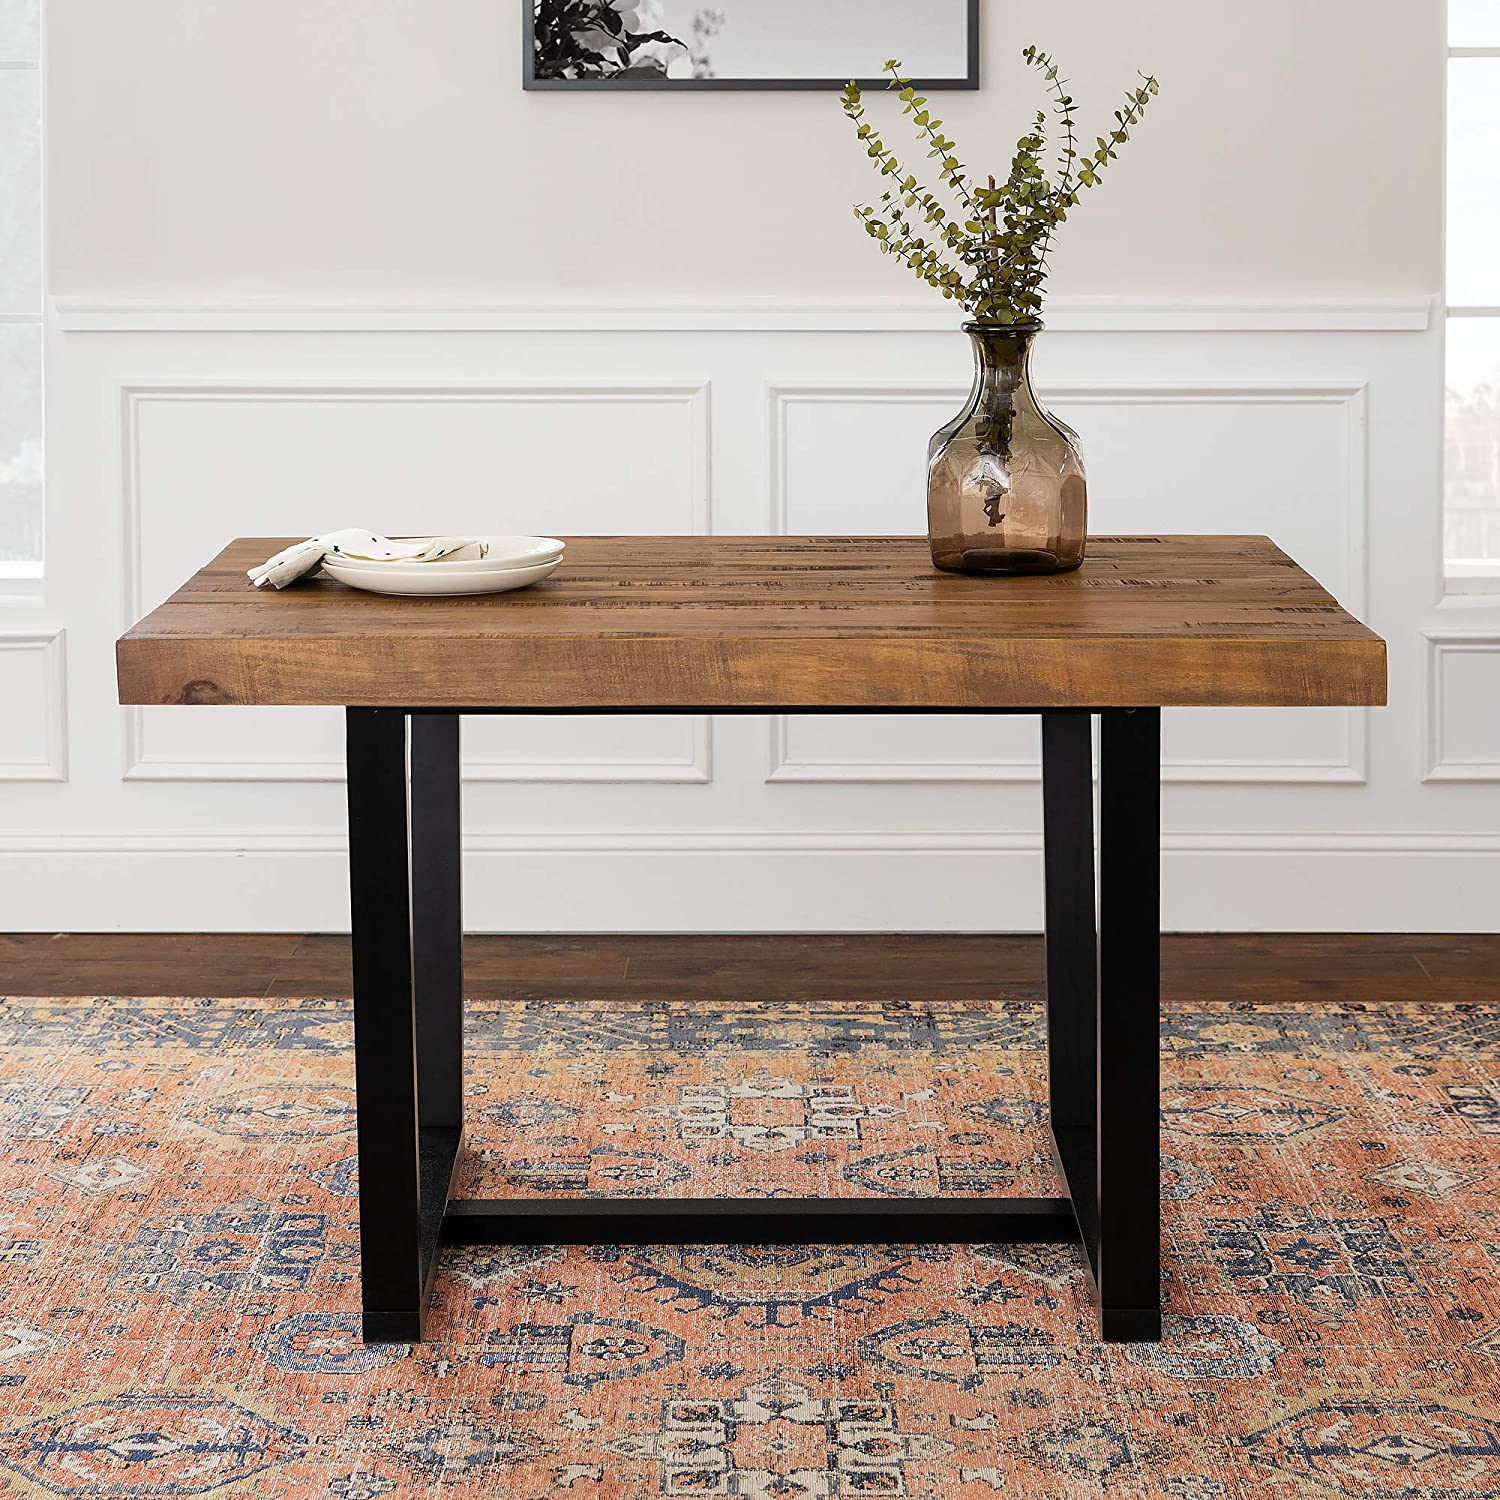 Amazon Com Walker Edison Furniture 6 Person Modern Farmhouse Distressed Wood Rectangle Kitchen Dining Table 52 Inch Brown Reclaimed Barnwood Table Chair Sets